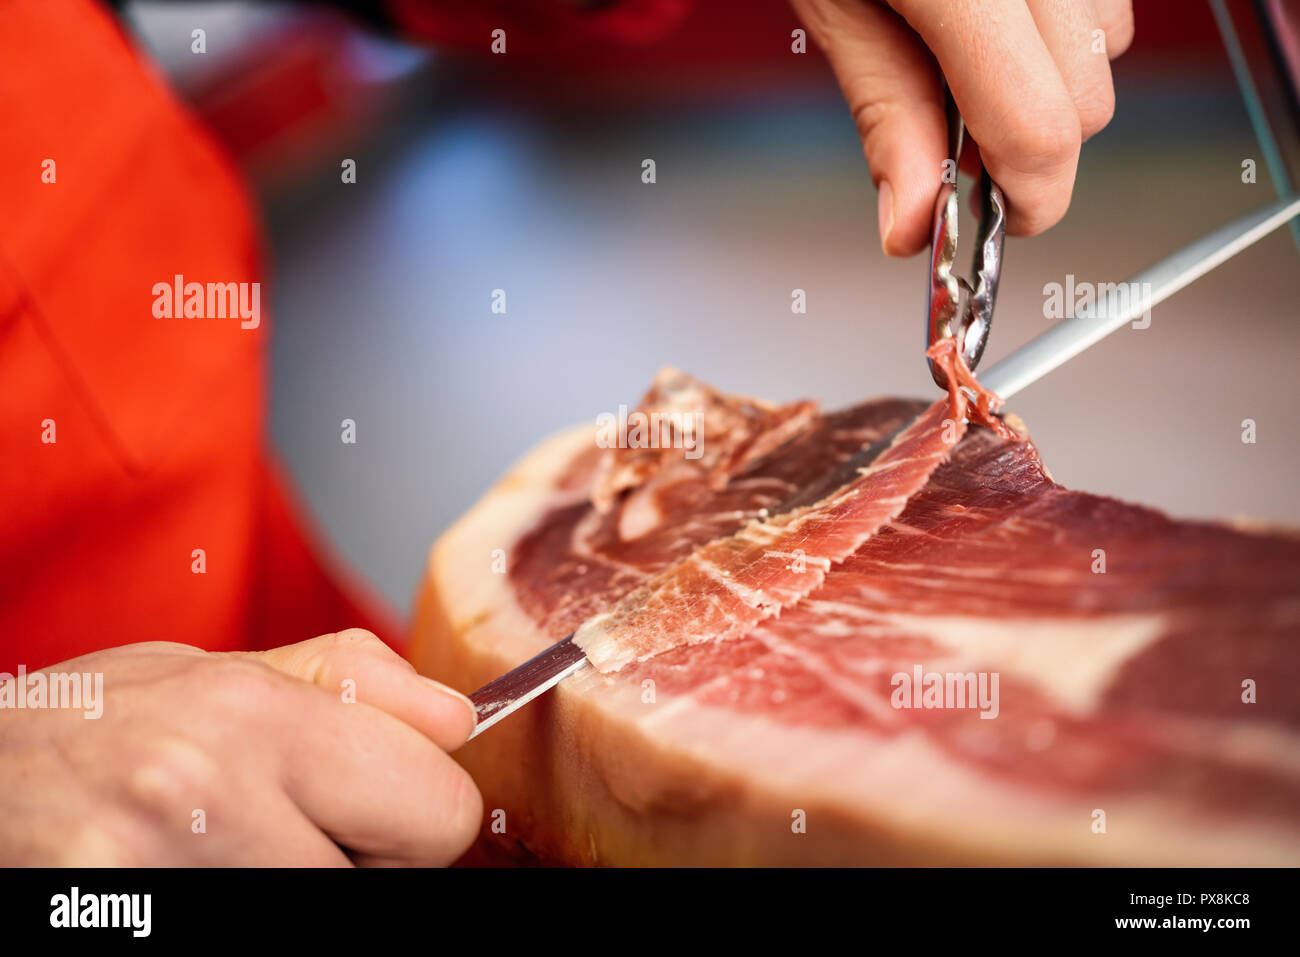 Close-up of professional cutter carving slices from a whole bone-in serrano ham - Stock Image